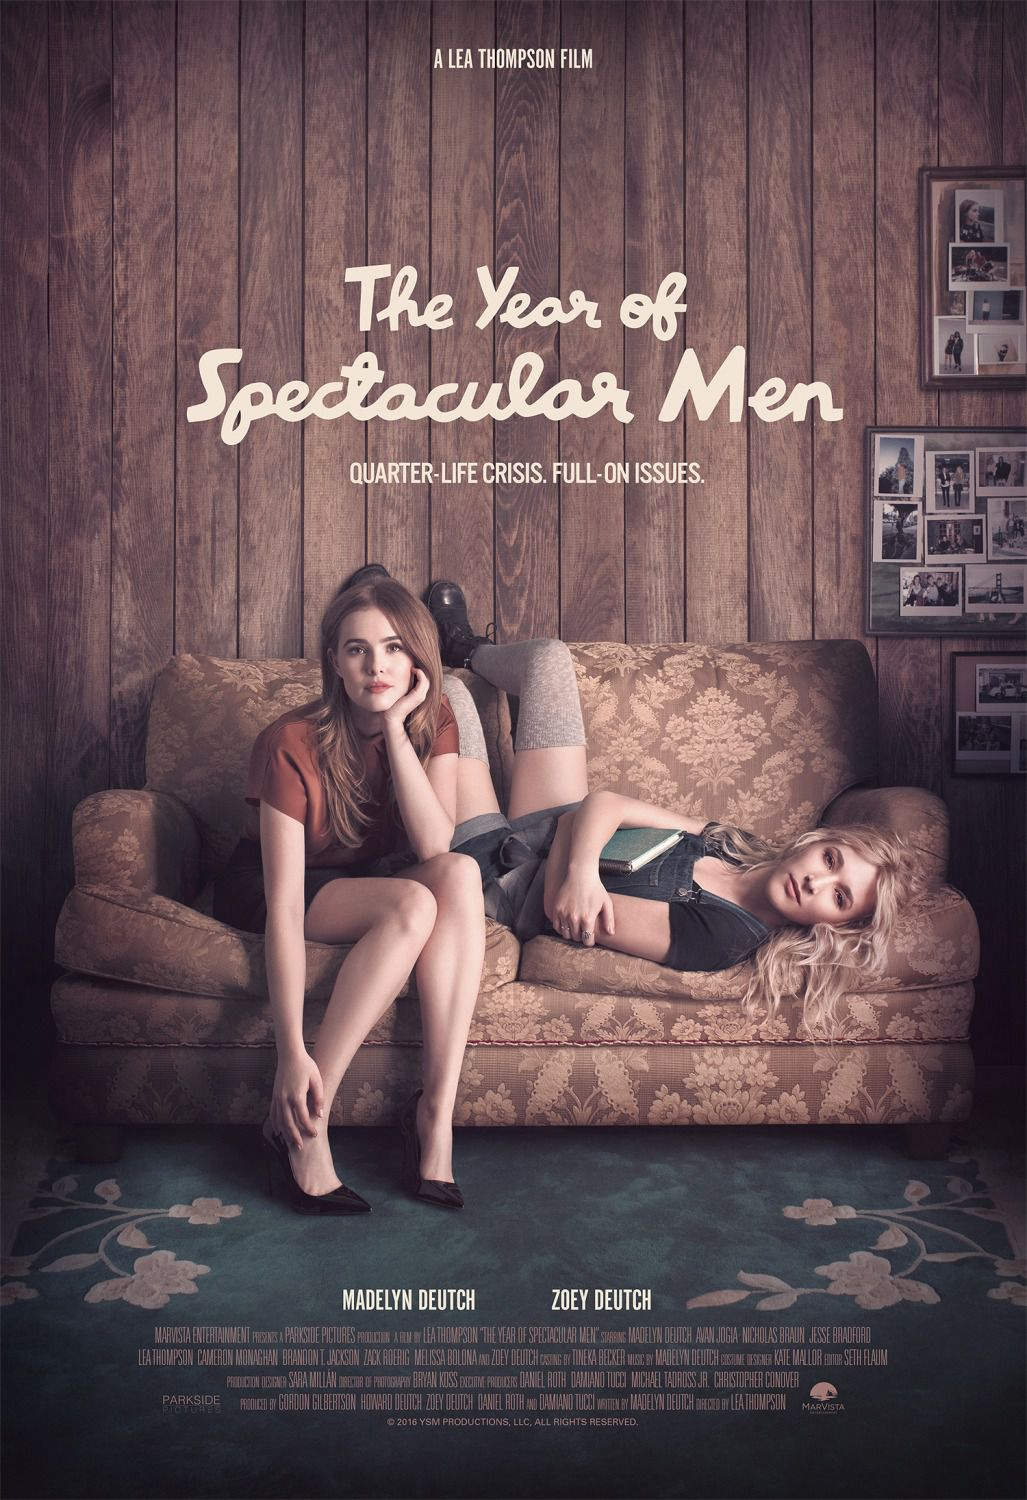 The Year of Spectacular Men - Cast: Madelyn Deutch, Zoey Deutch, Lea Thompson, Melissa Bolona film poster 2018